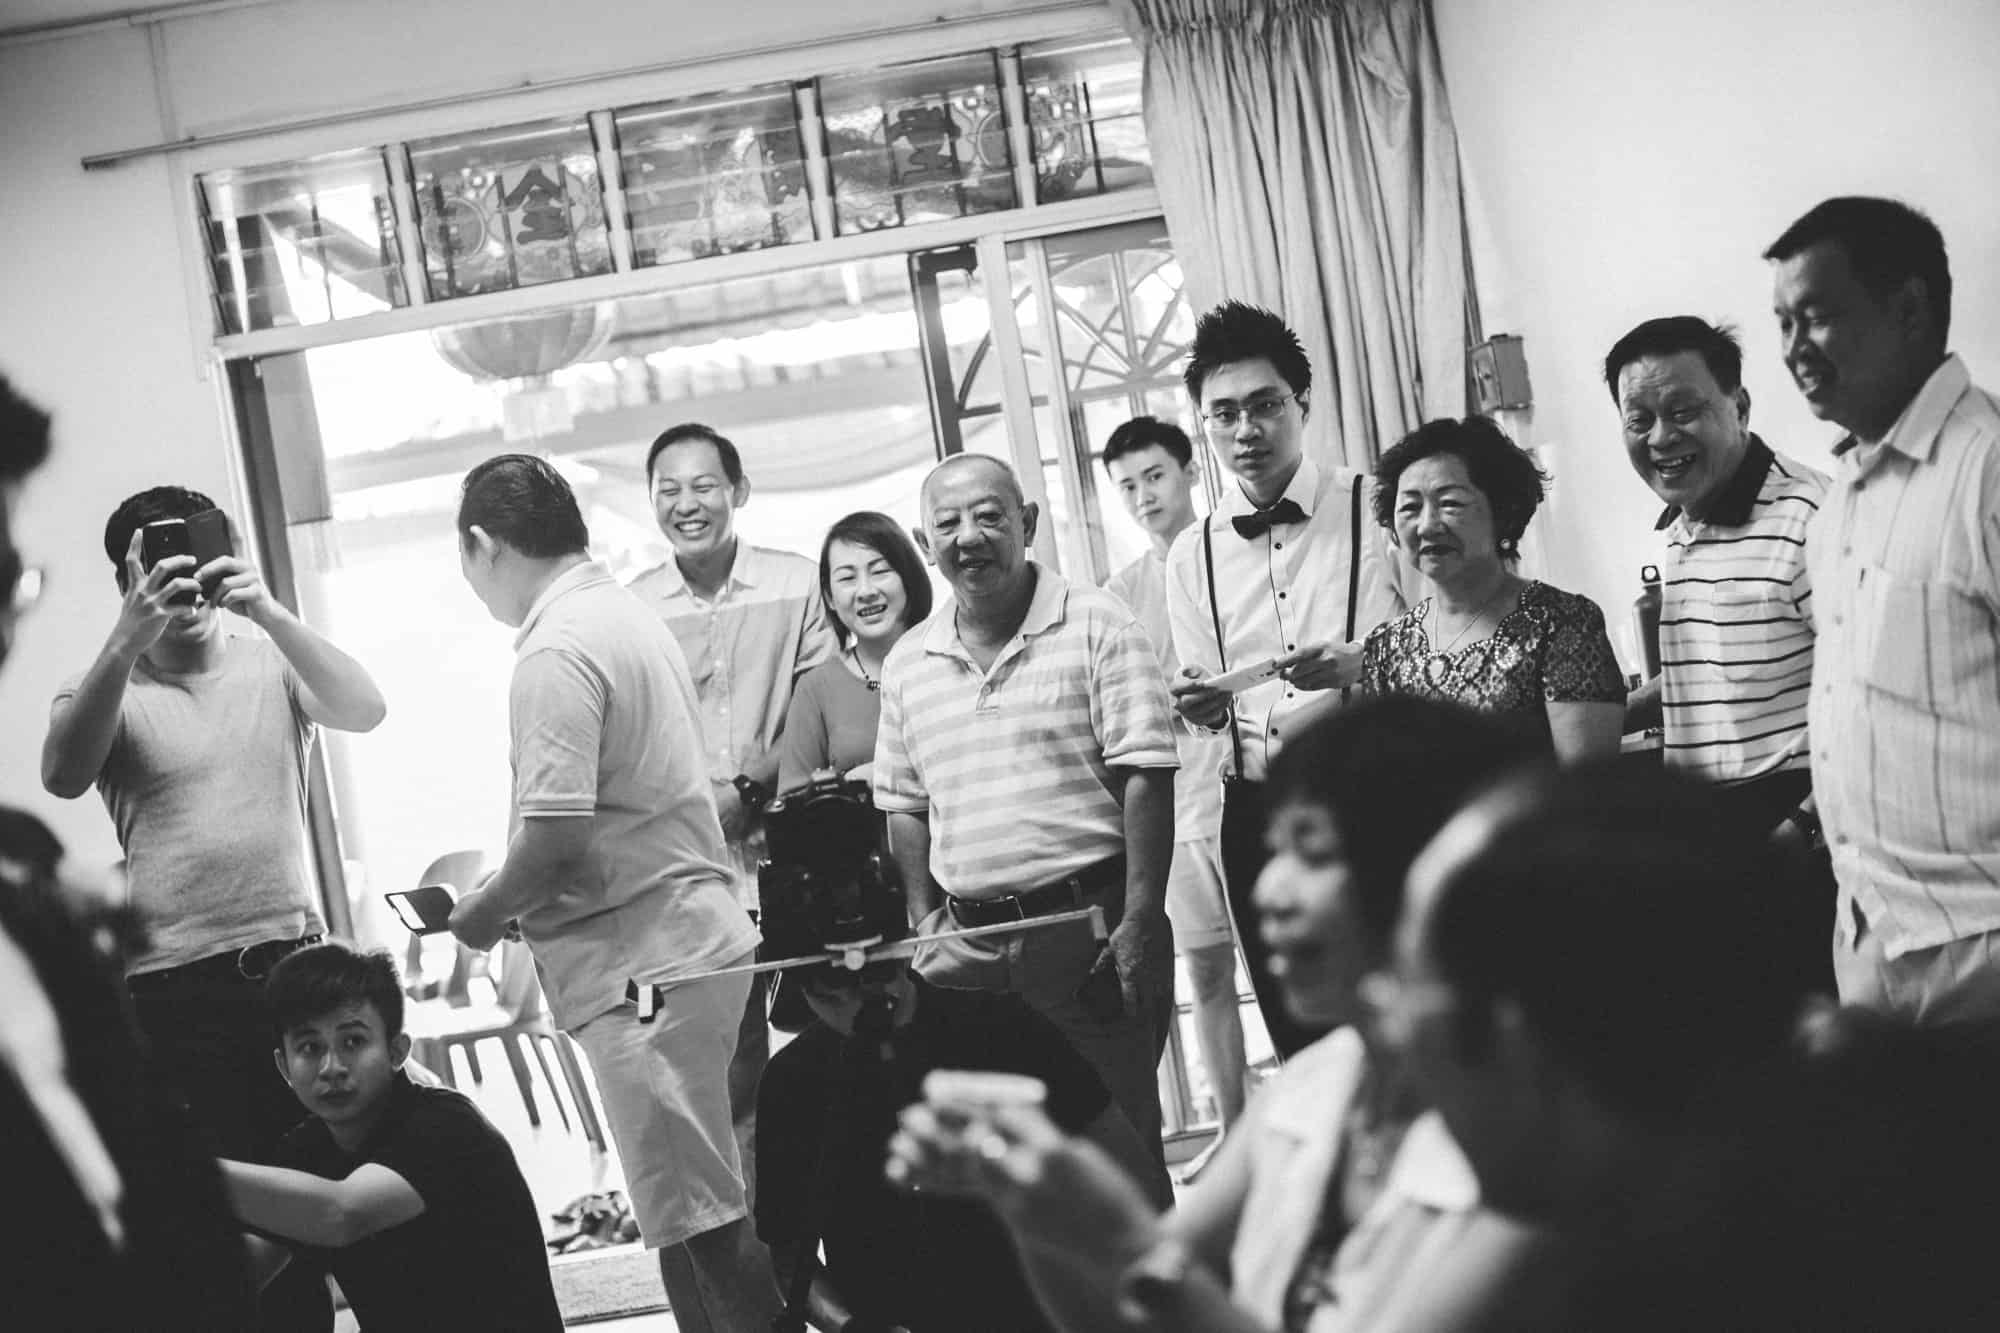 Johor malaysia wedding photograph kuala lumpur cliff choong photography gate crashing game groom brdie holding hands love kombi tea ceremony parents laugh joy